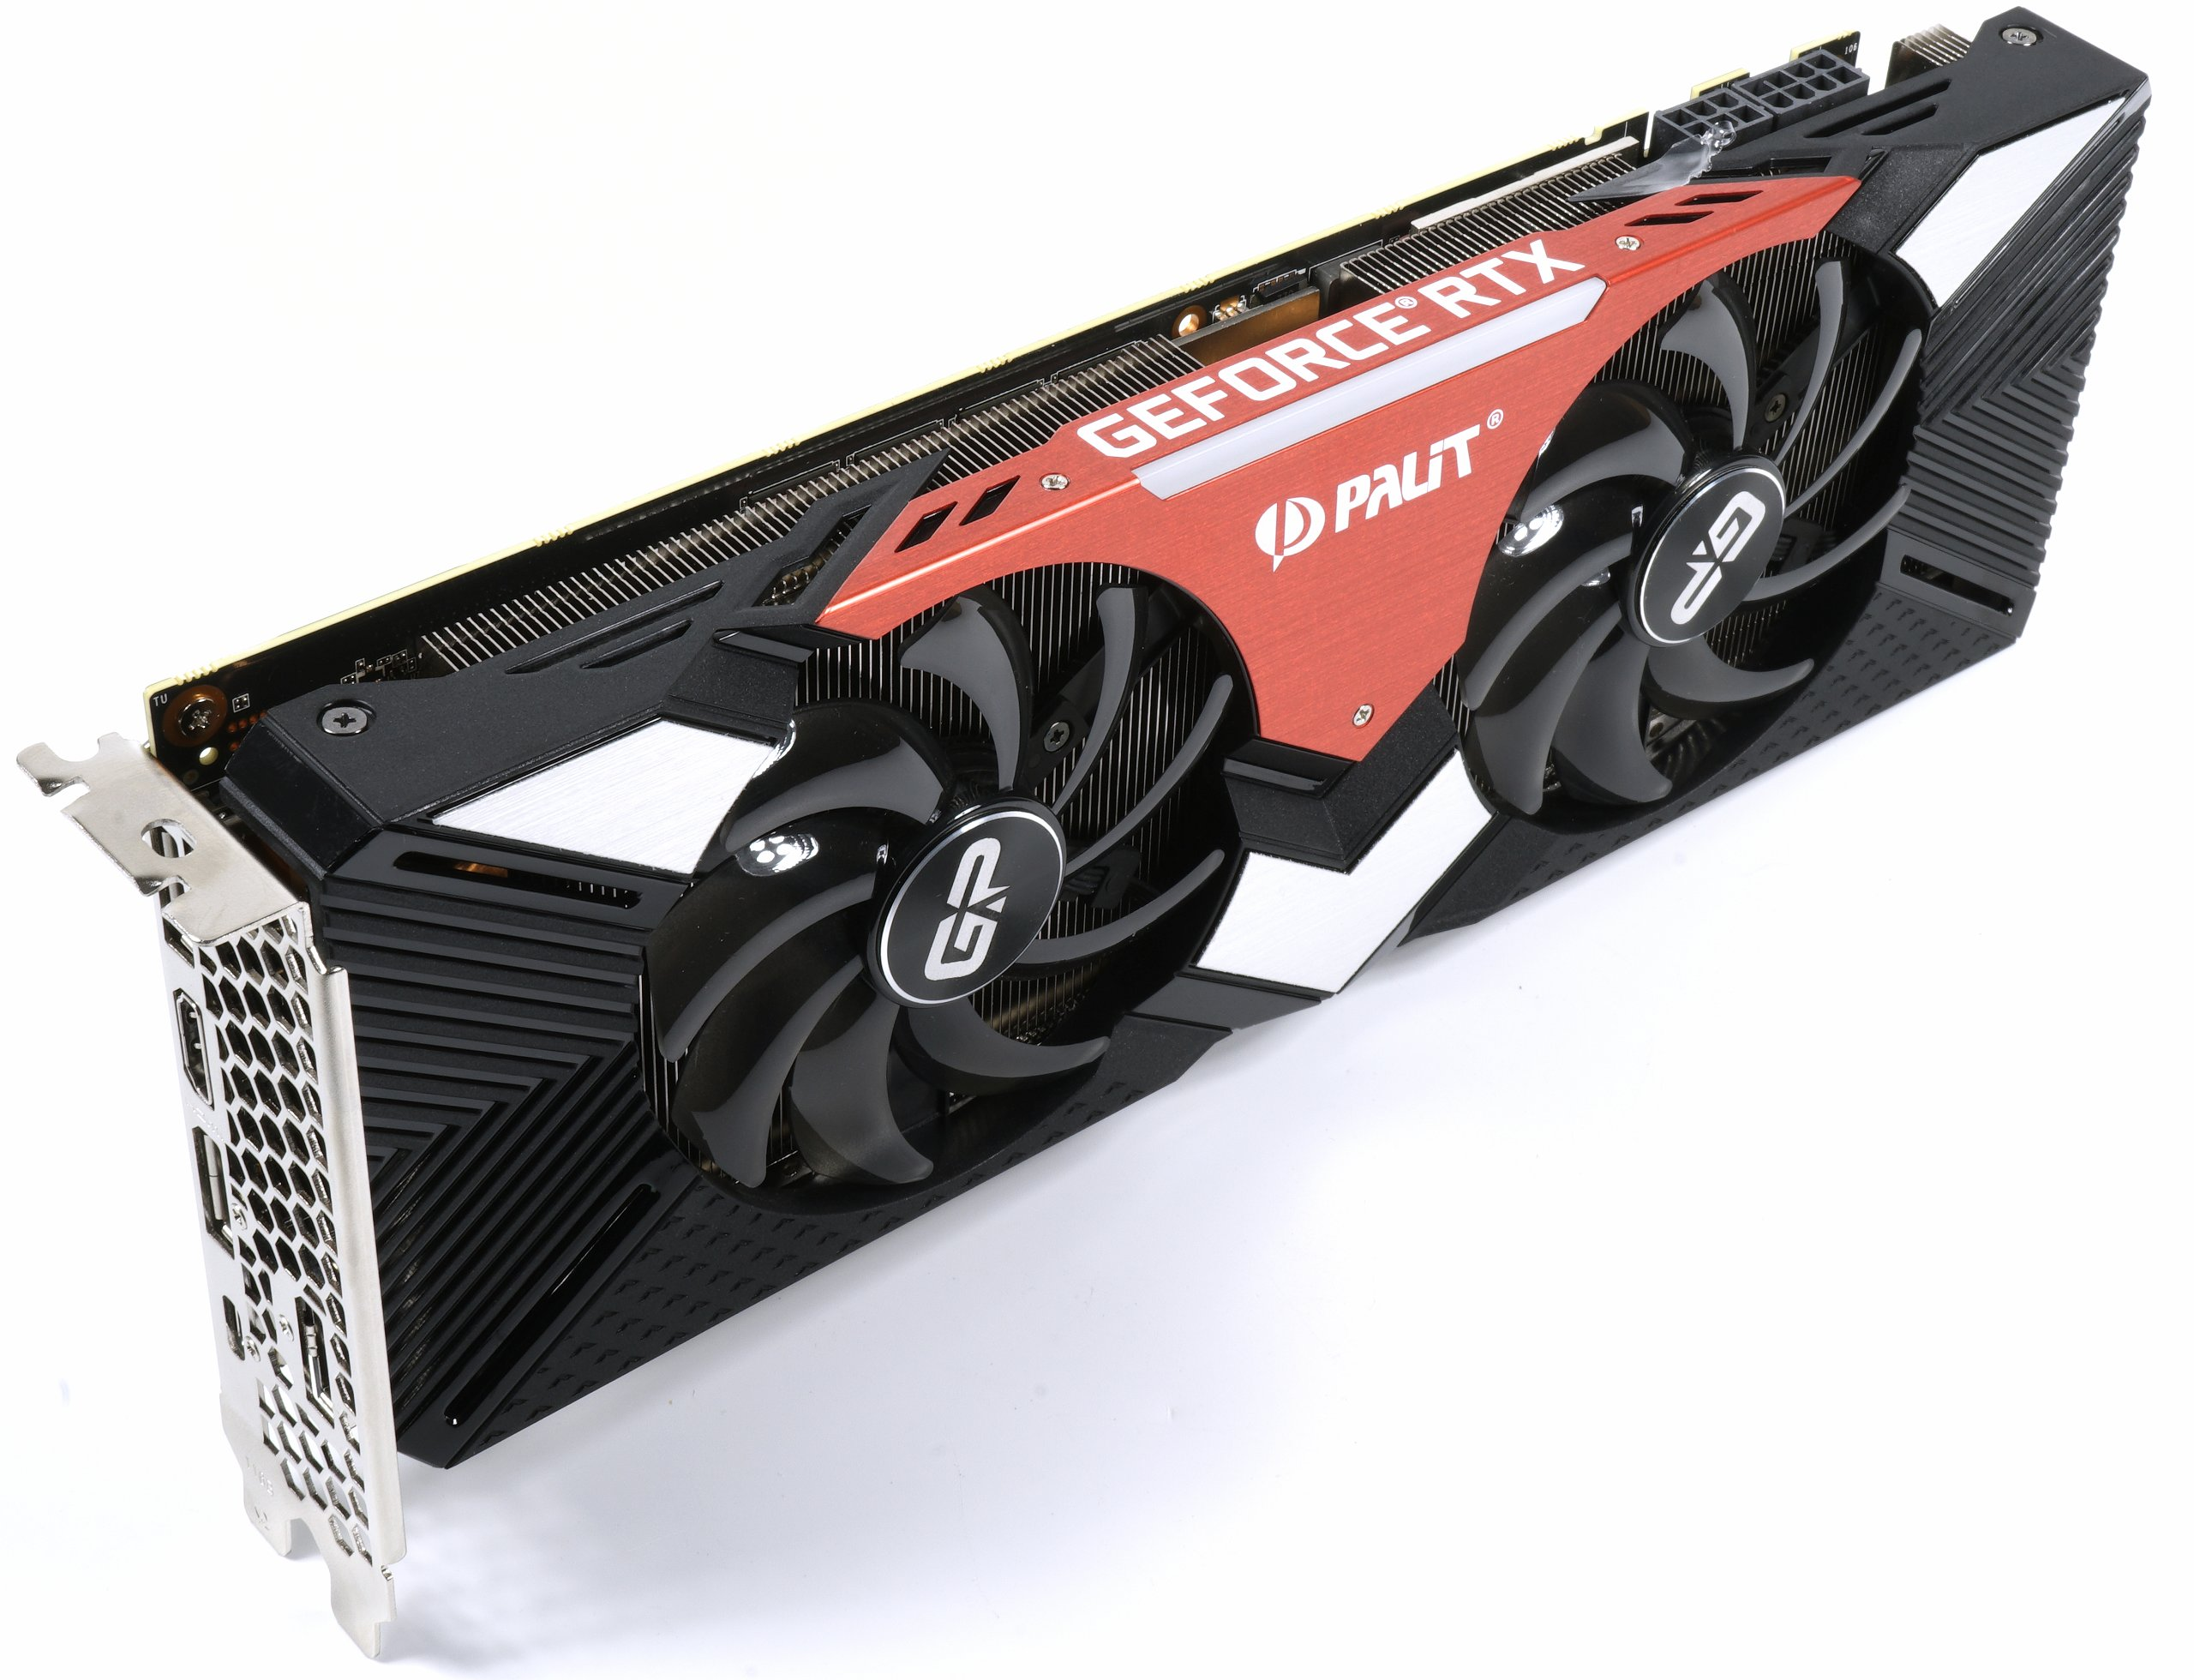 Palit Geforce Rtx 2070 Dual In First Test Igor Slab